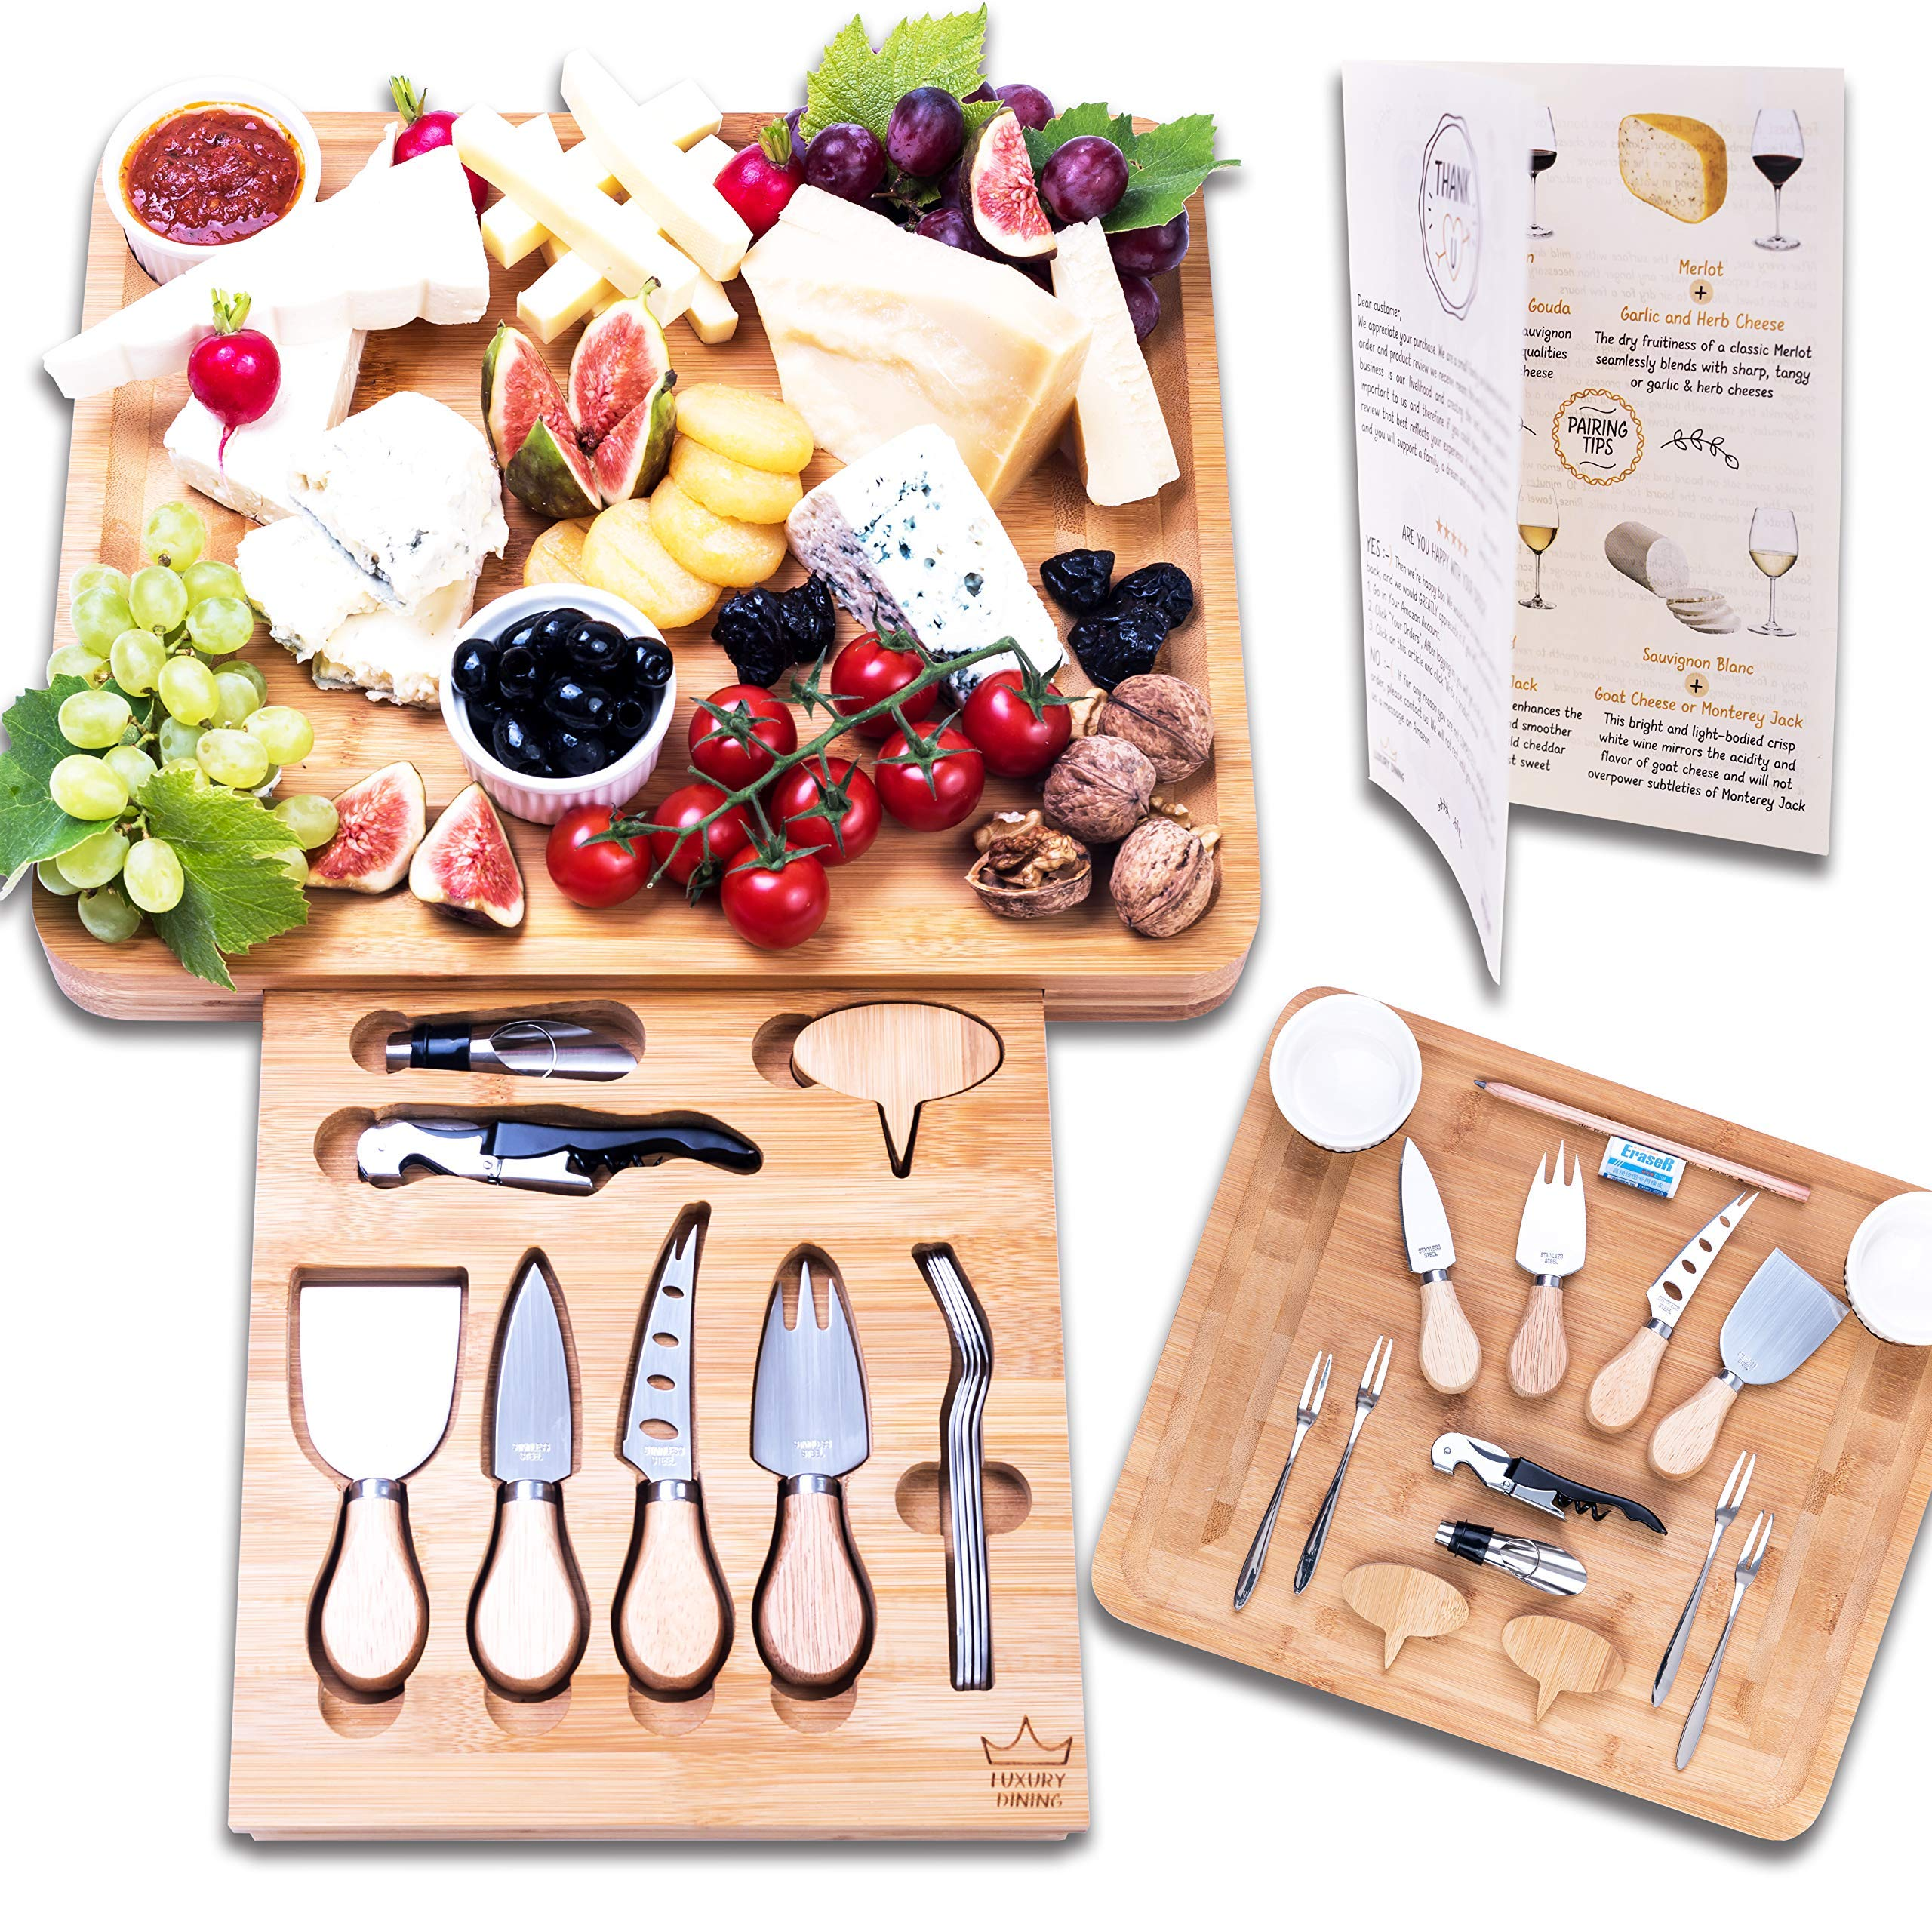 Luxury Dining 16-piece Cheese Charcuterie Board and Knife Cutlery Set - Organic Bamboo Cutting and Serving Tray for Meat, Crackers, Wine with Hidden Unique Drawer, Perfect Housewarming Present Idea by Luxury Dining